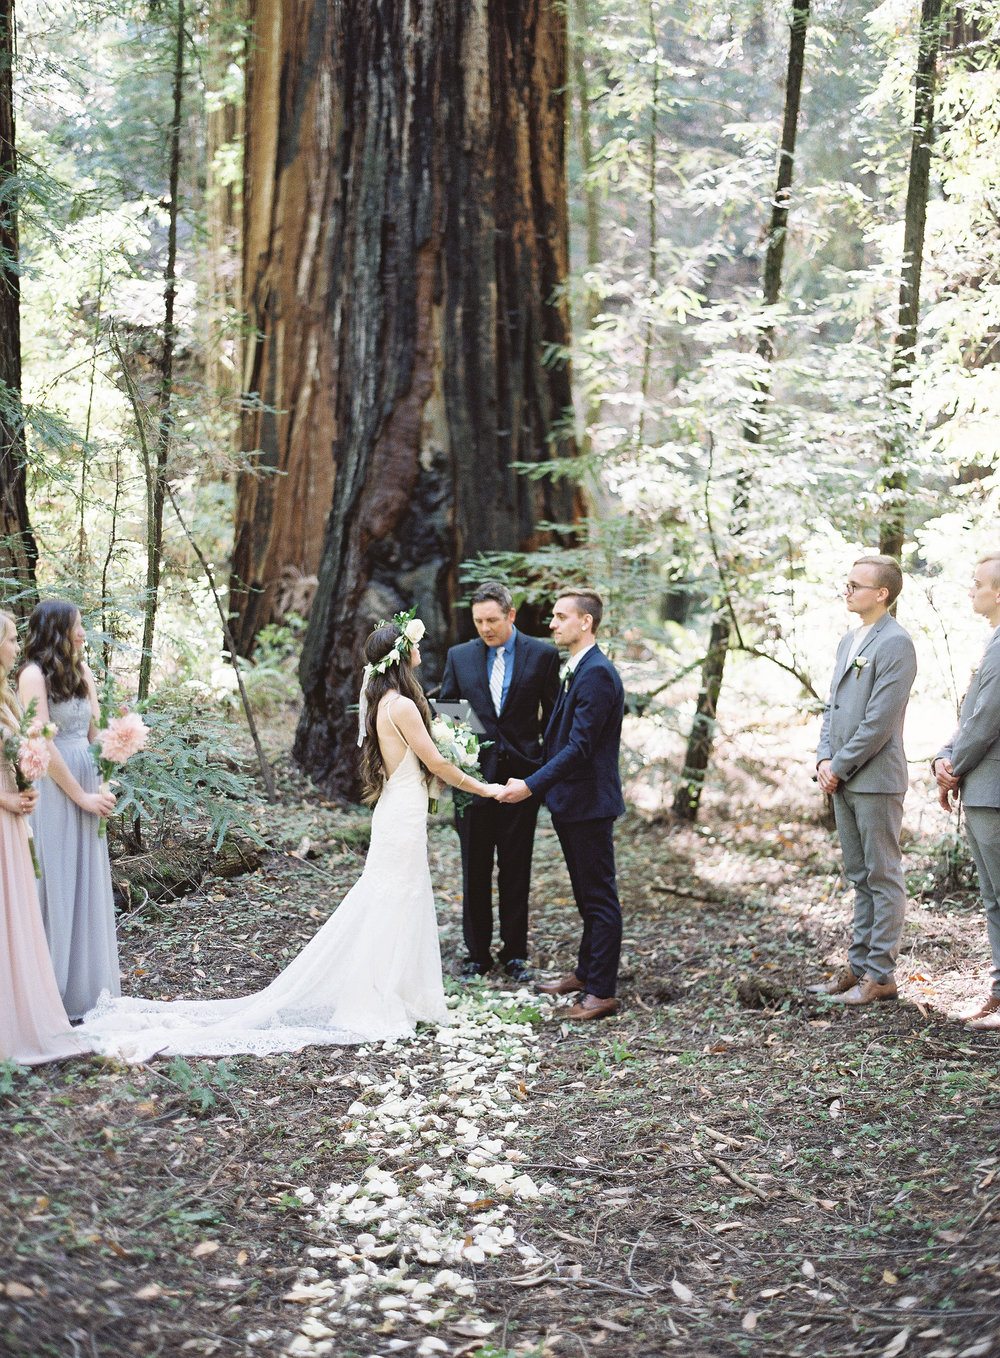 Meghan Mehan Photography | California Wedding Photographer | Napa California Wedding Photographer 073.jpg